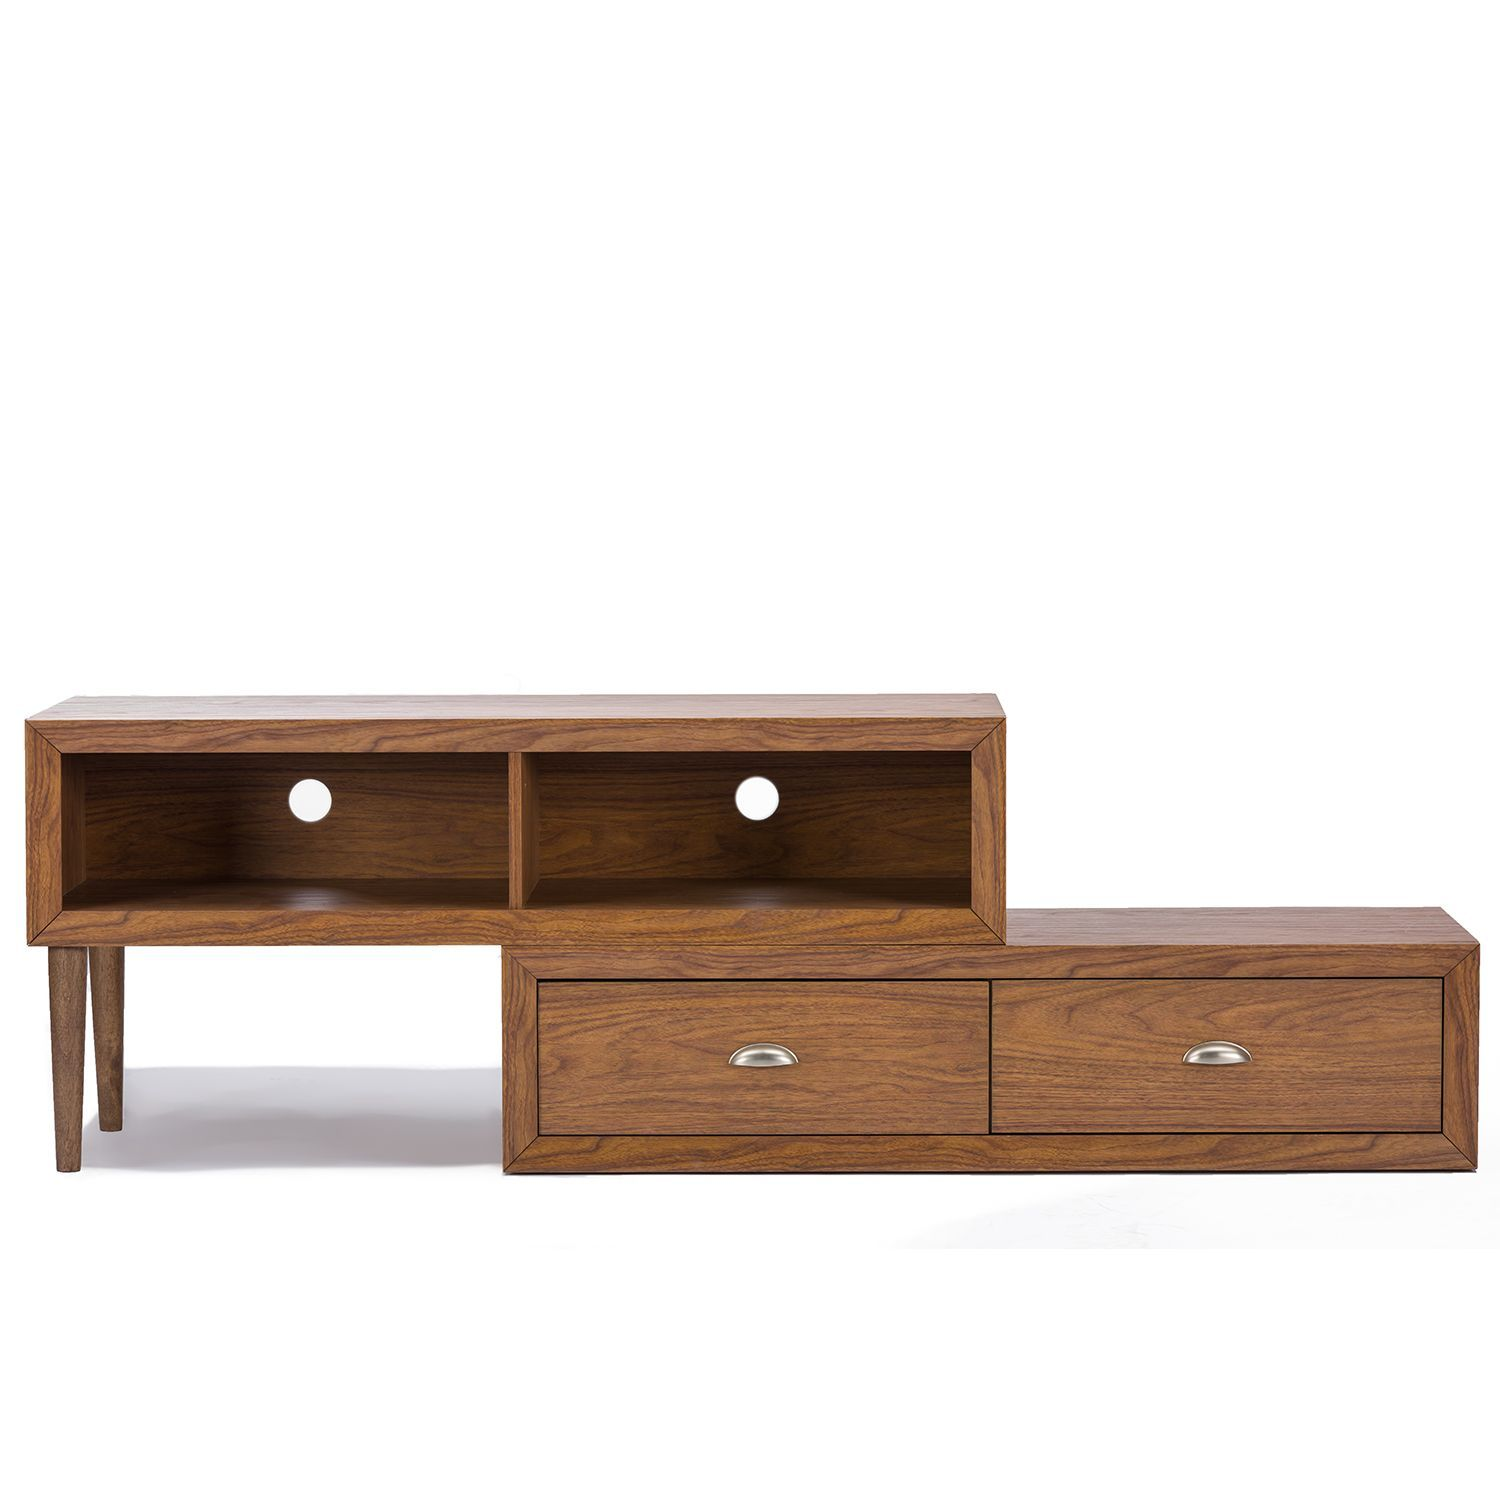 Keep a low profile with our Bainbridge Wood Contemporary TV Stand